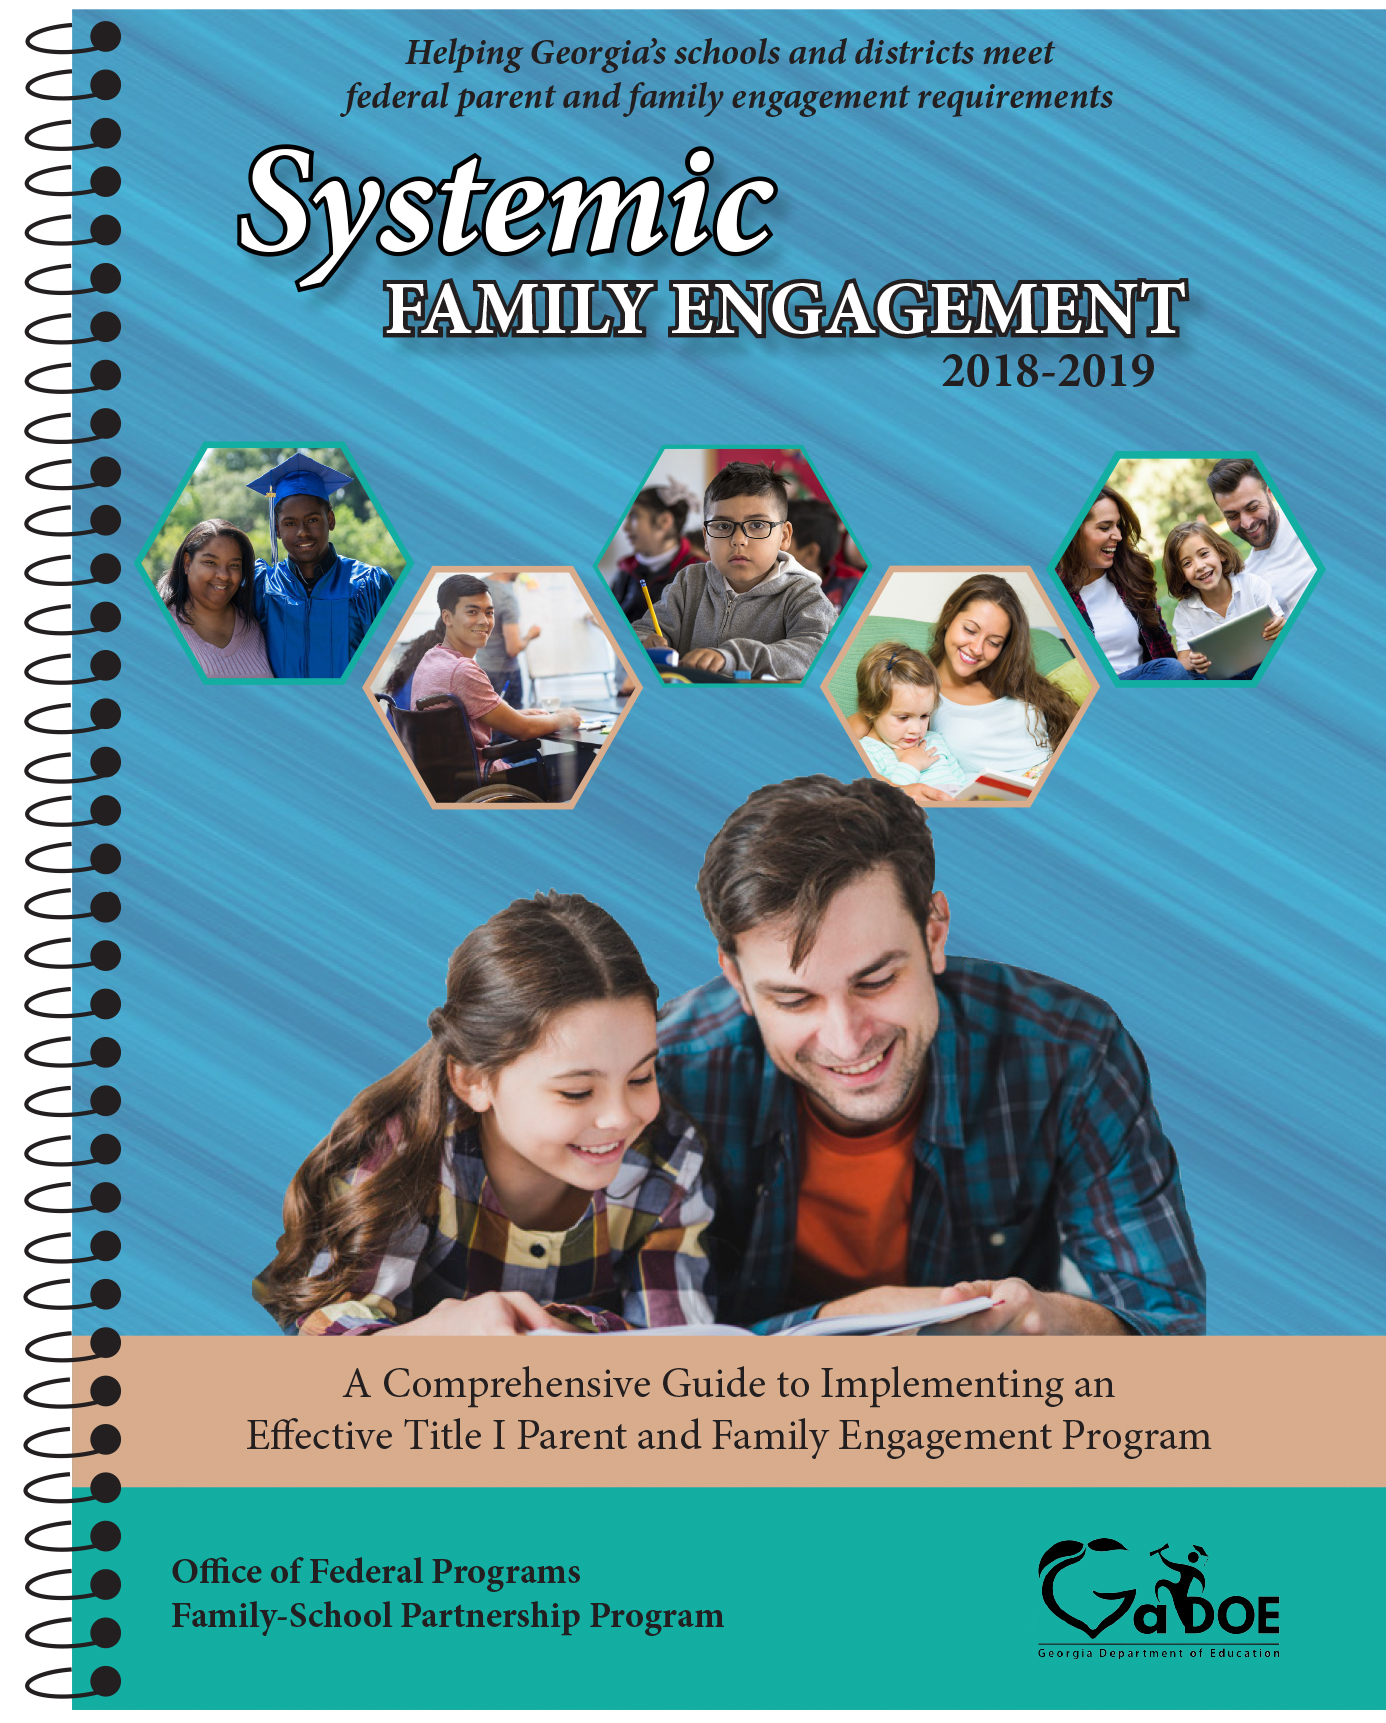 Thumbnail image of the 2017-2018 Family Engagement handbook